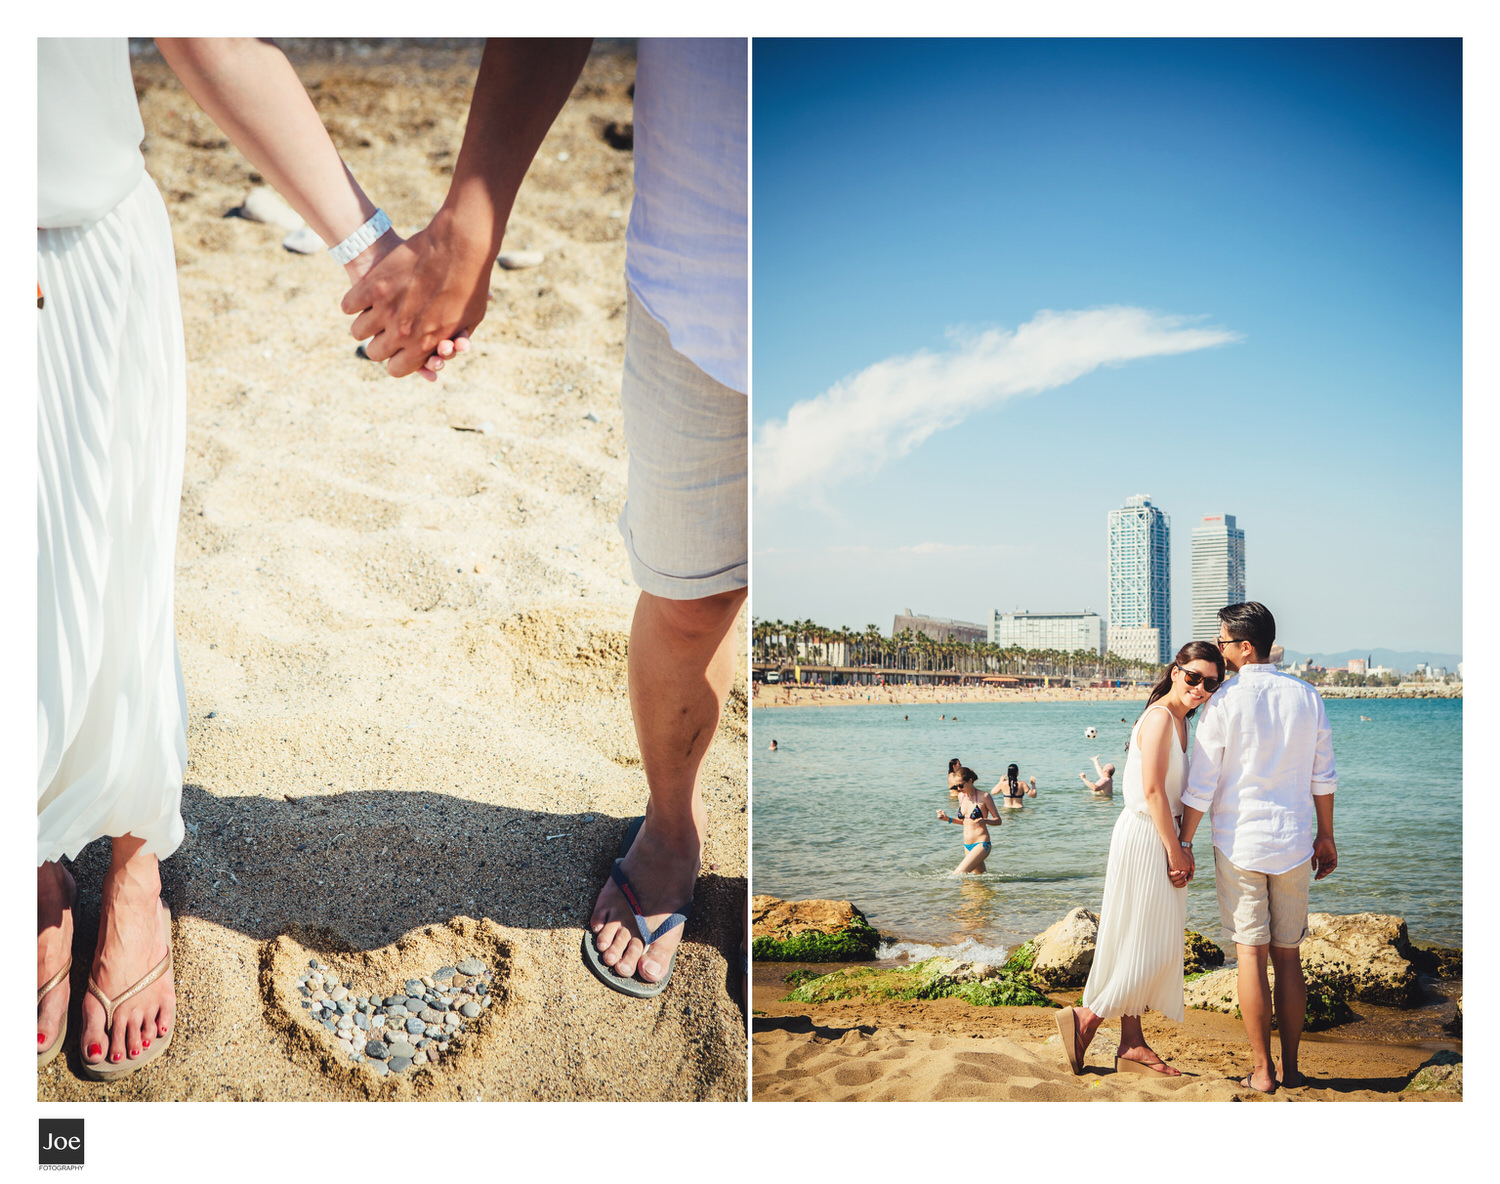 joe-fotography-73-barcelona-beach-pre-wedding-linda-colin.jpg